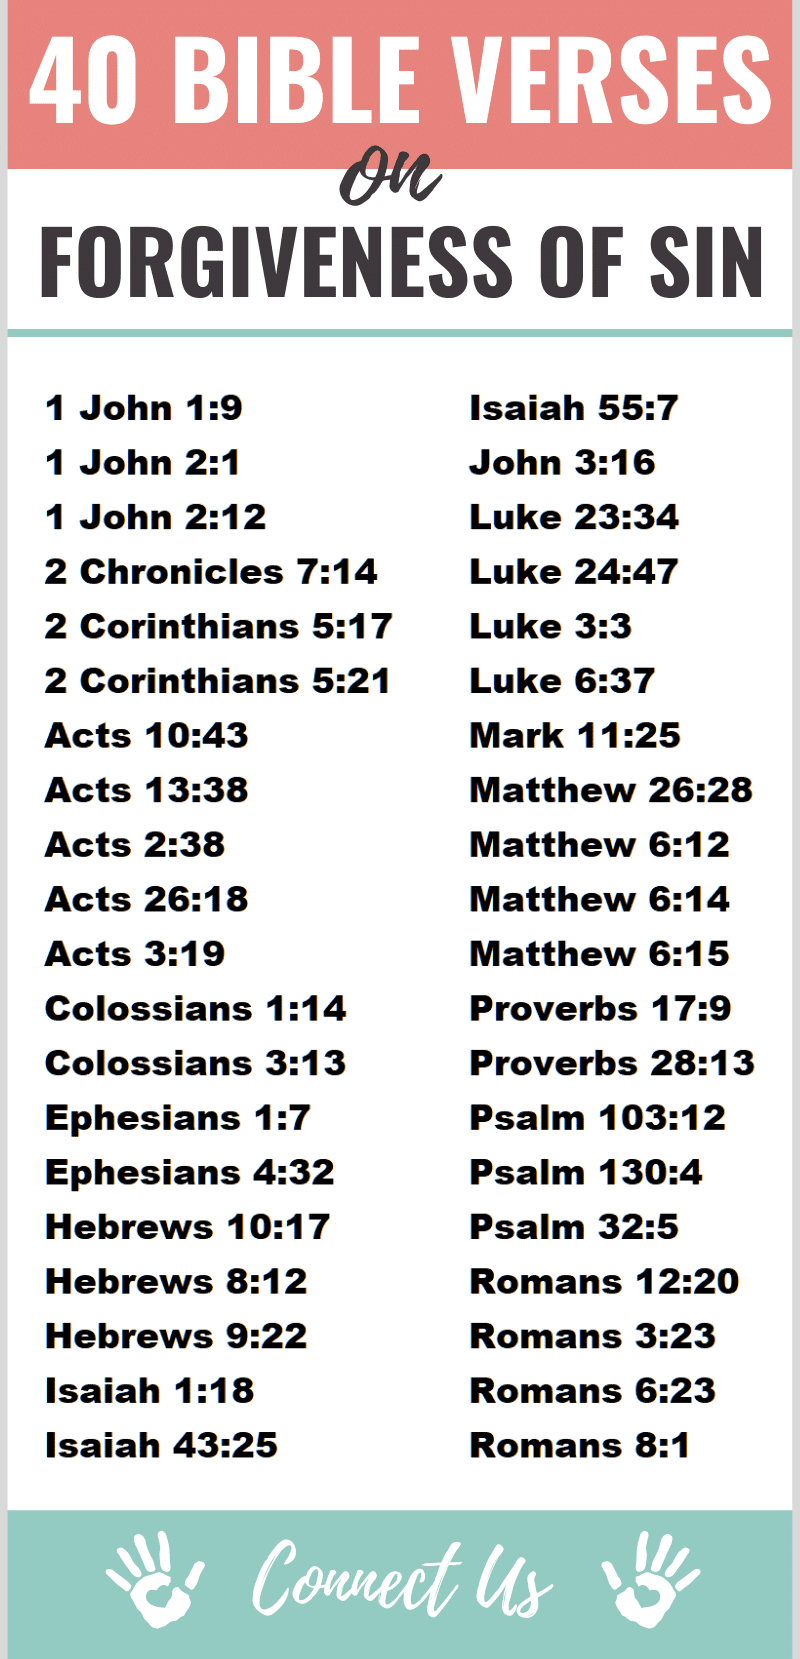 40 Powerful Bible Scriptures on Forgiveness of Sin